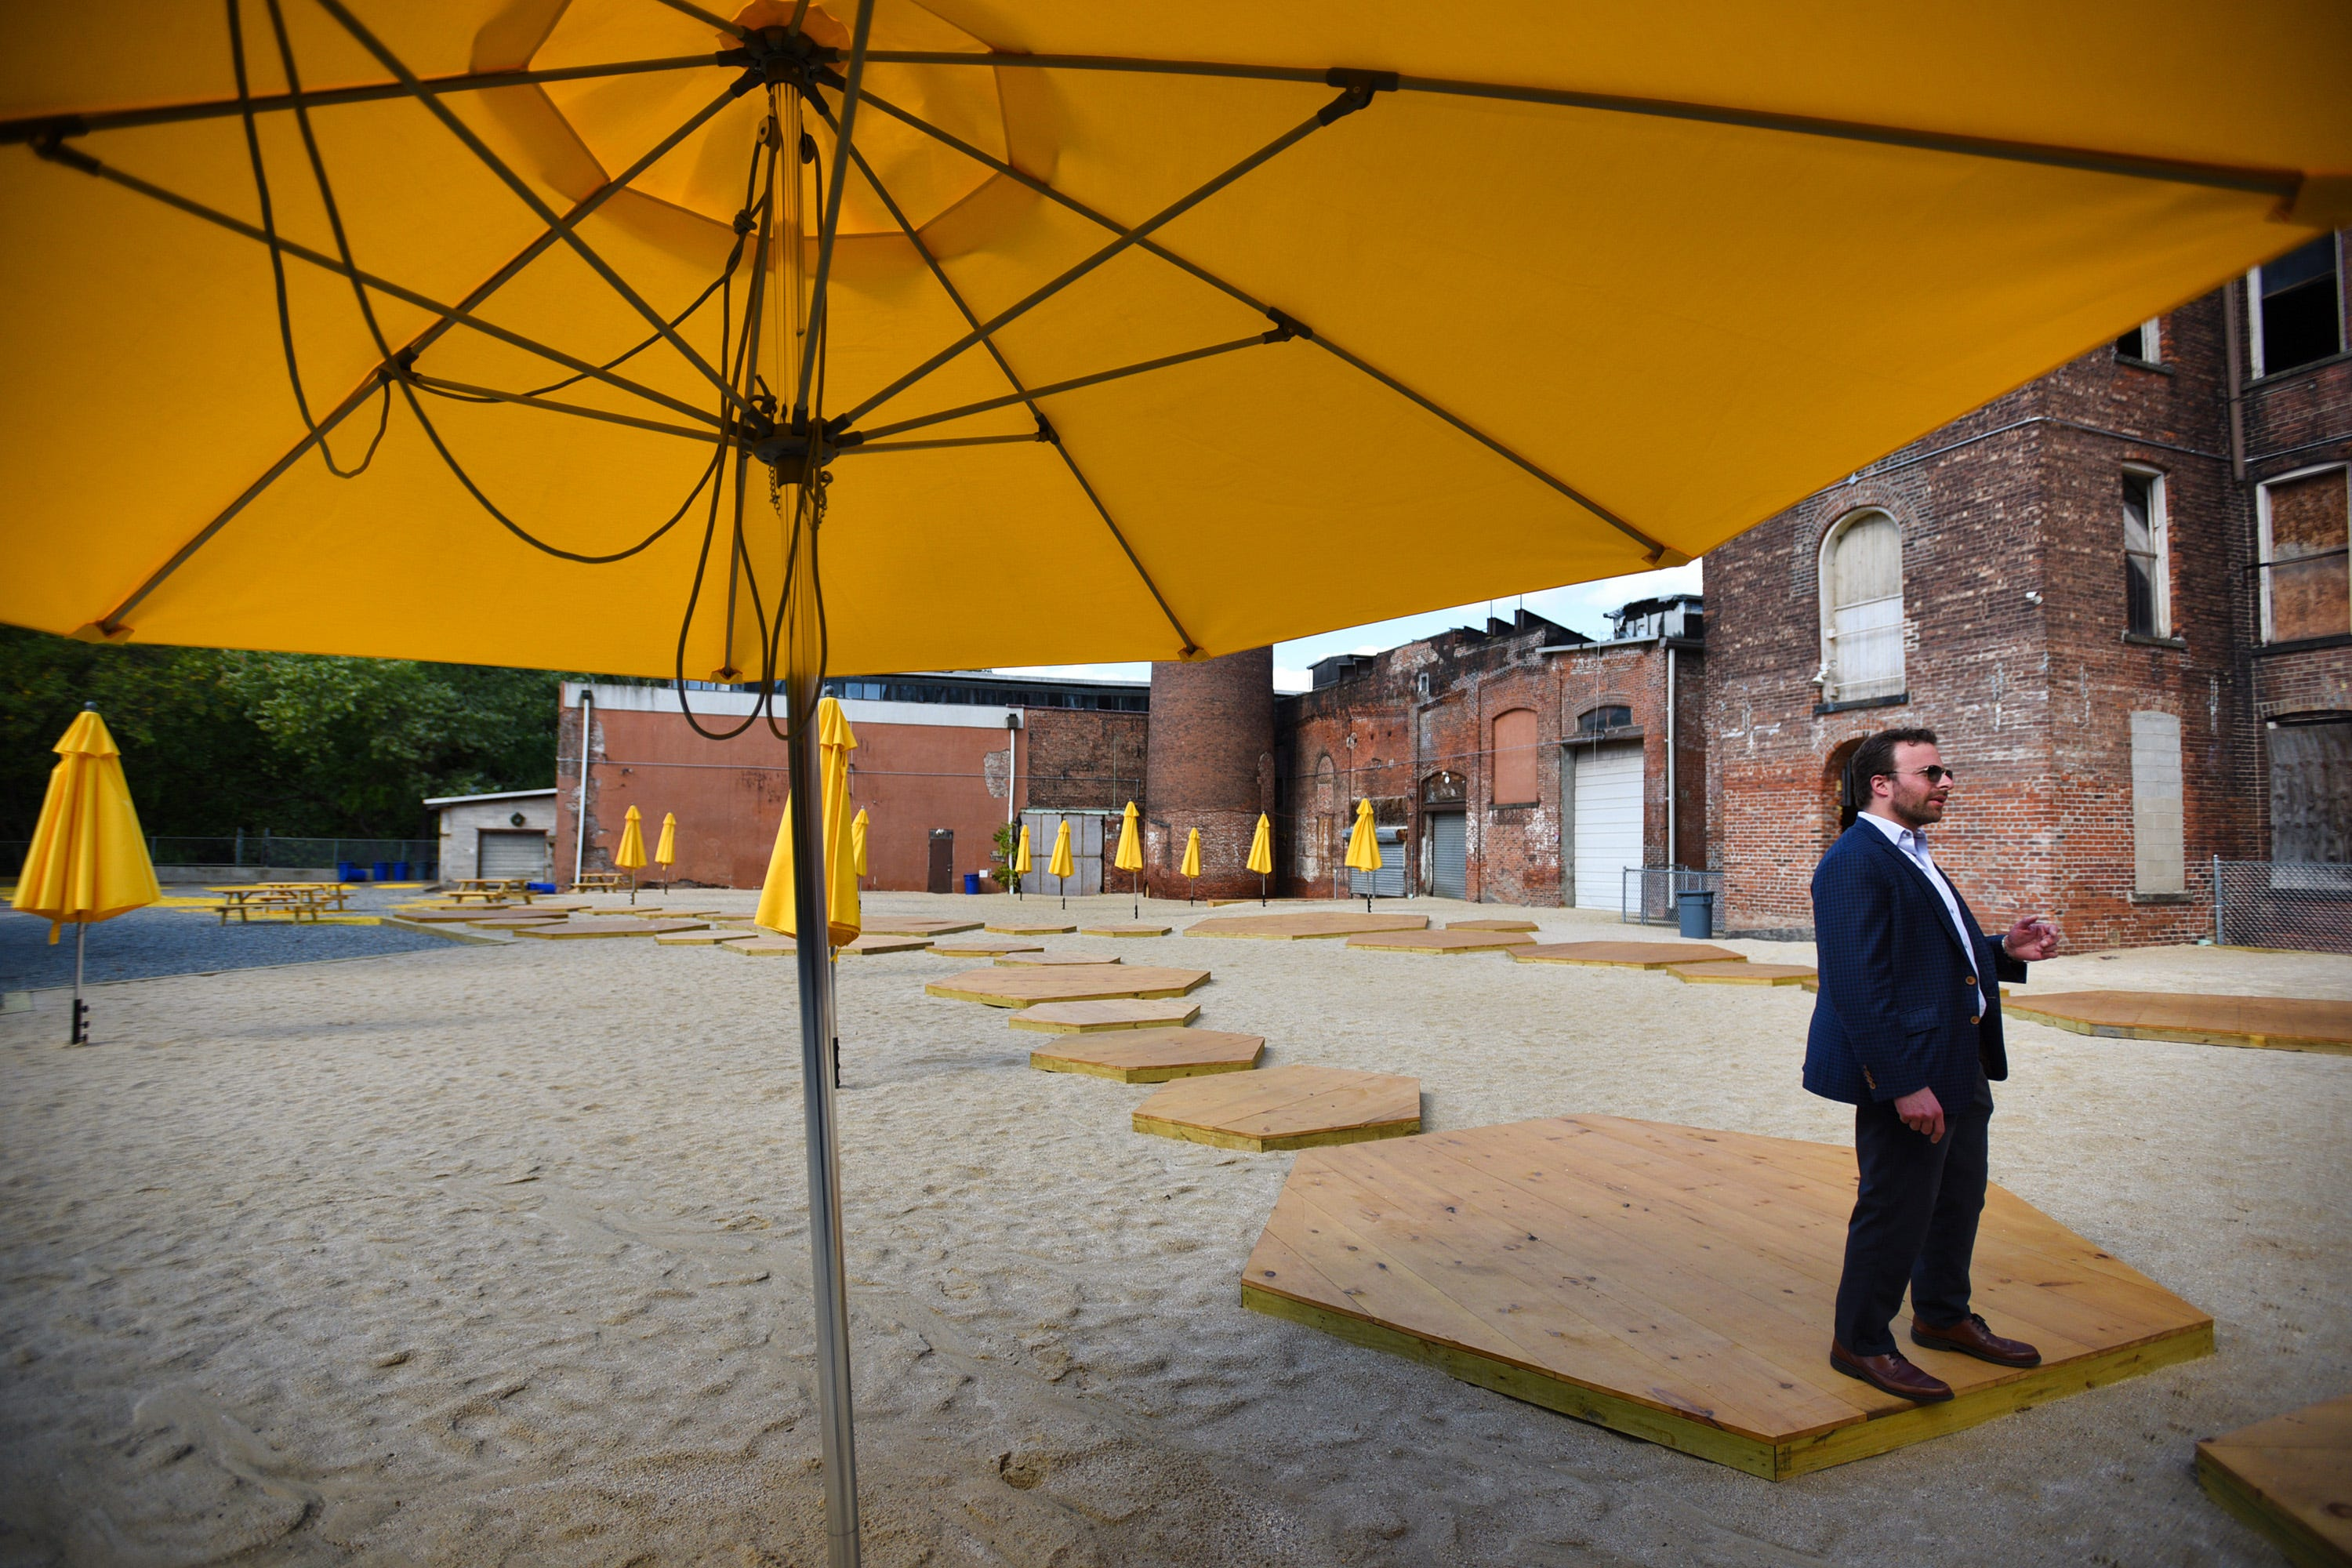 Levi Kelman, CEO of Blue Onyx Companies, who bought a complex of old mill buildings near the Passaic River for $4.2 million located in Paterson, walks on platforms across a sand-like beach while showing around the sites, photographed on September 30,2020.